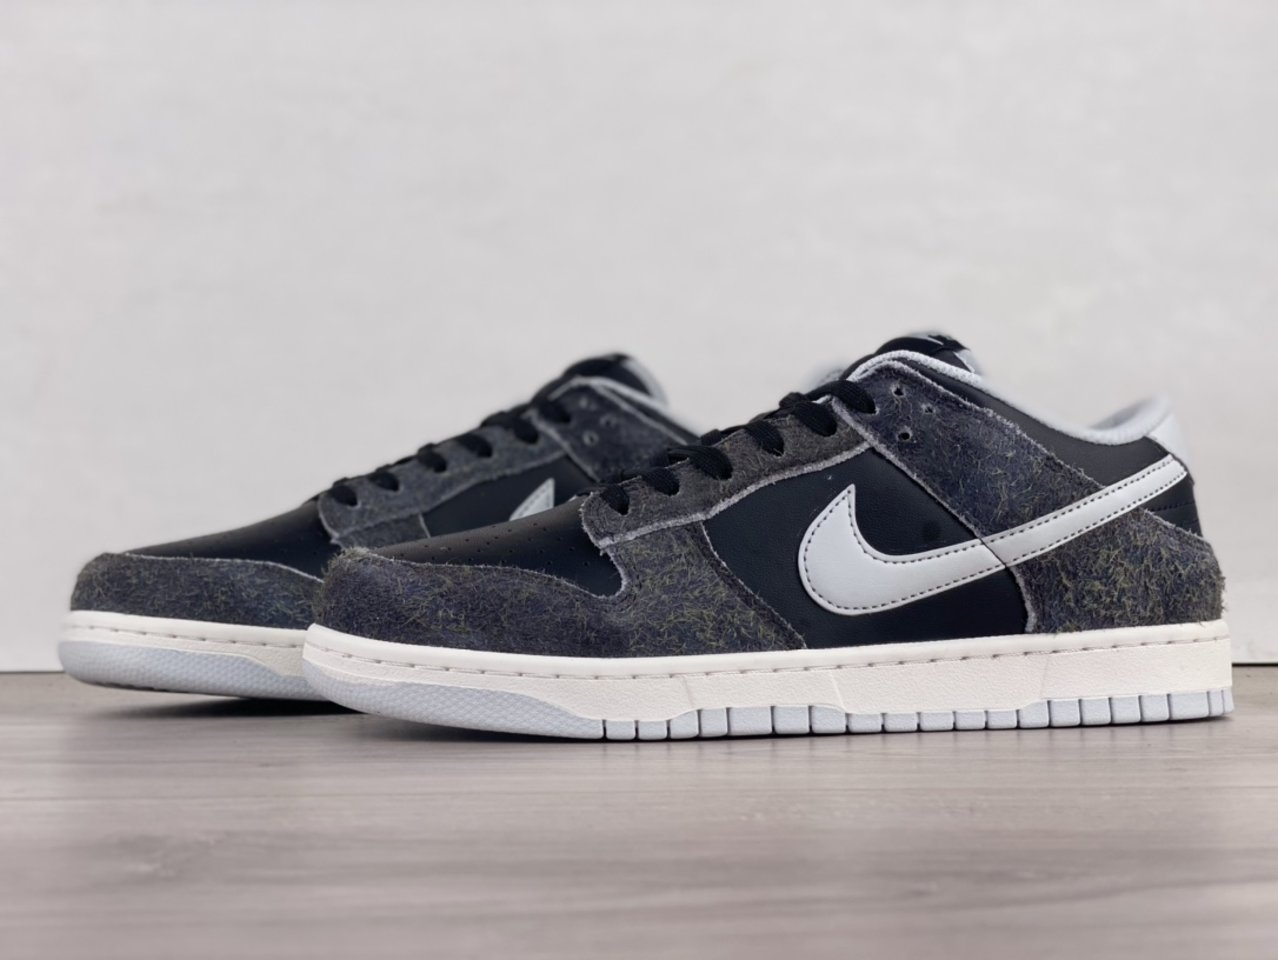 2021 New Nike Dunk Low Retro Animal Pack Zebra DH7913-001 side